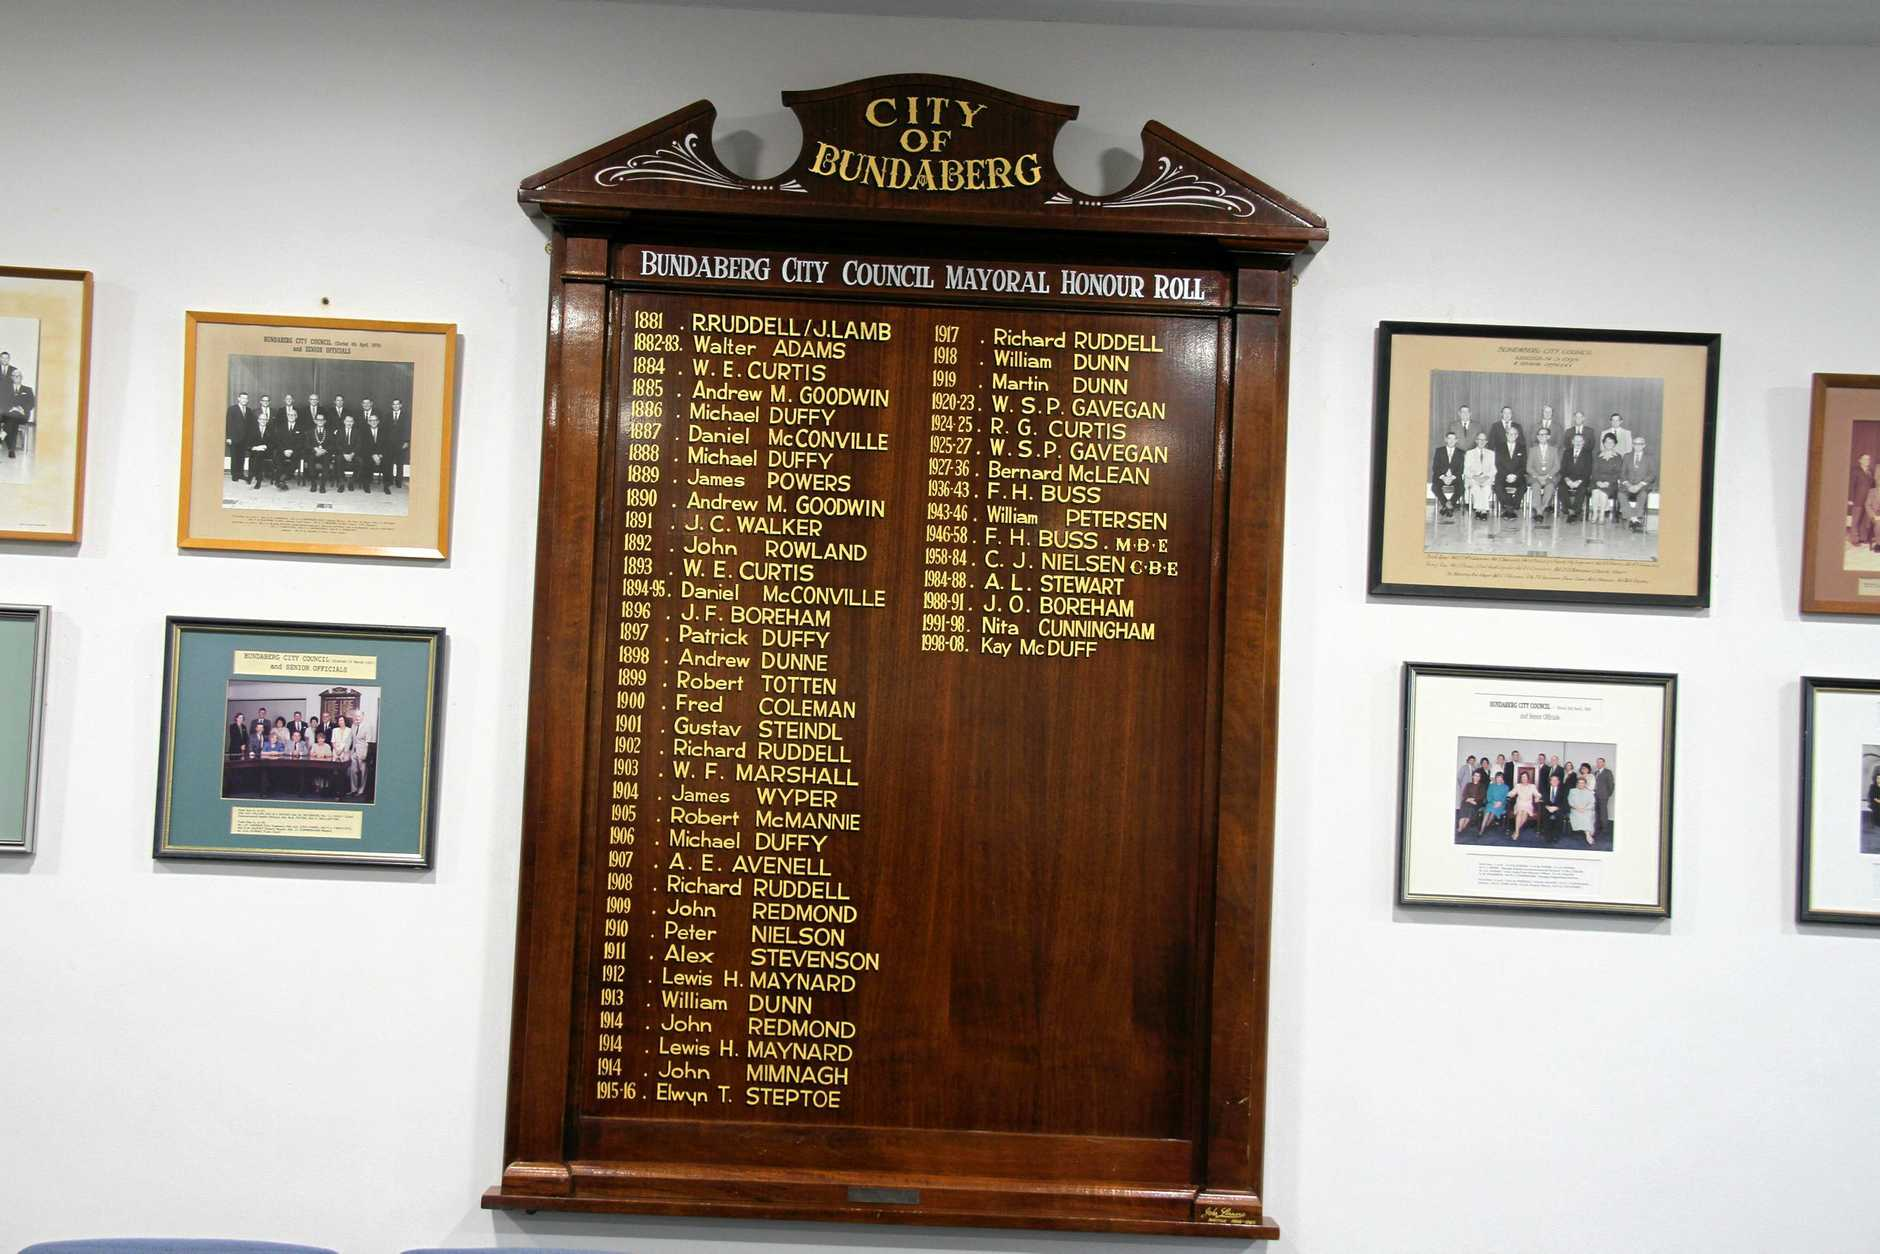 TOP SPOT: Bundaberg council's Mayoral Honour Roll lists Mr Lamb as one-time mayor.